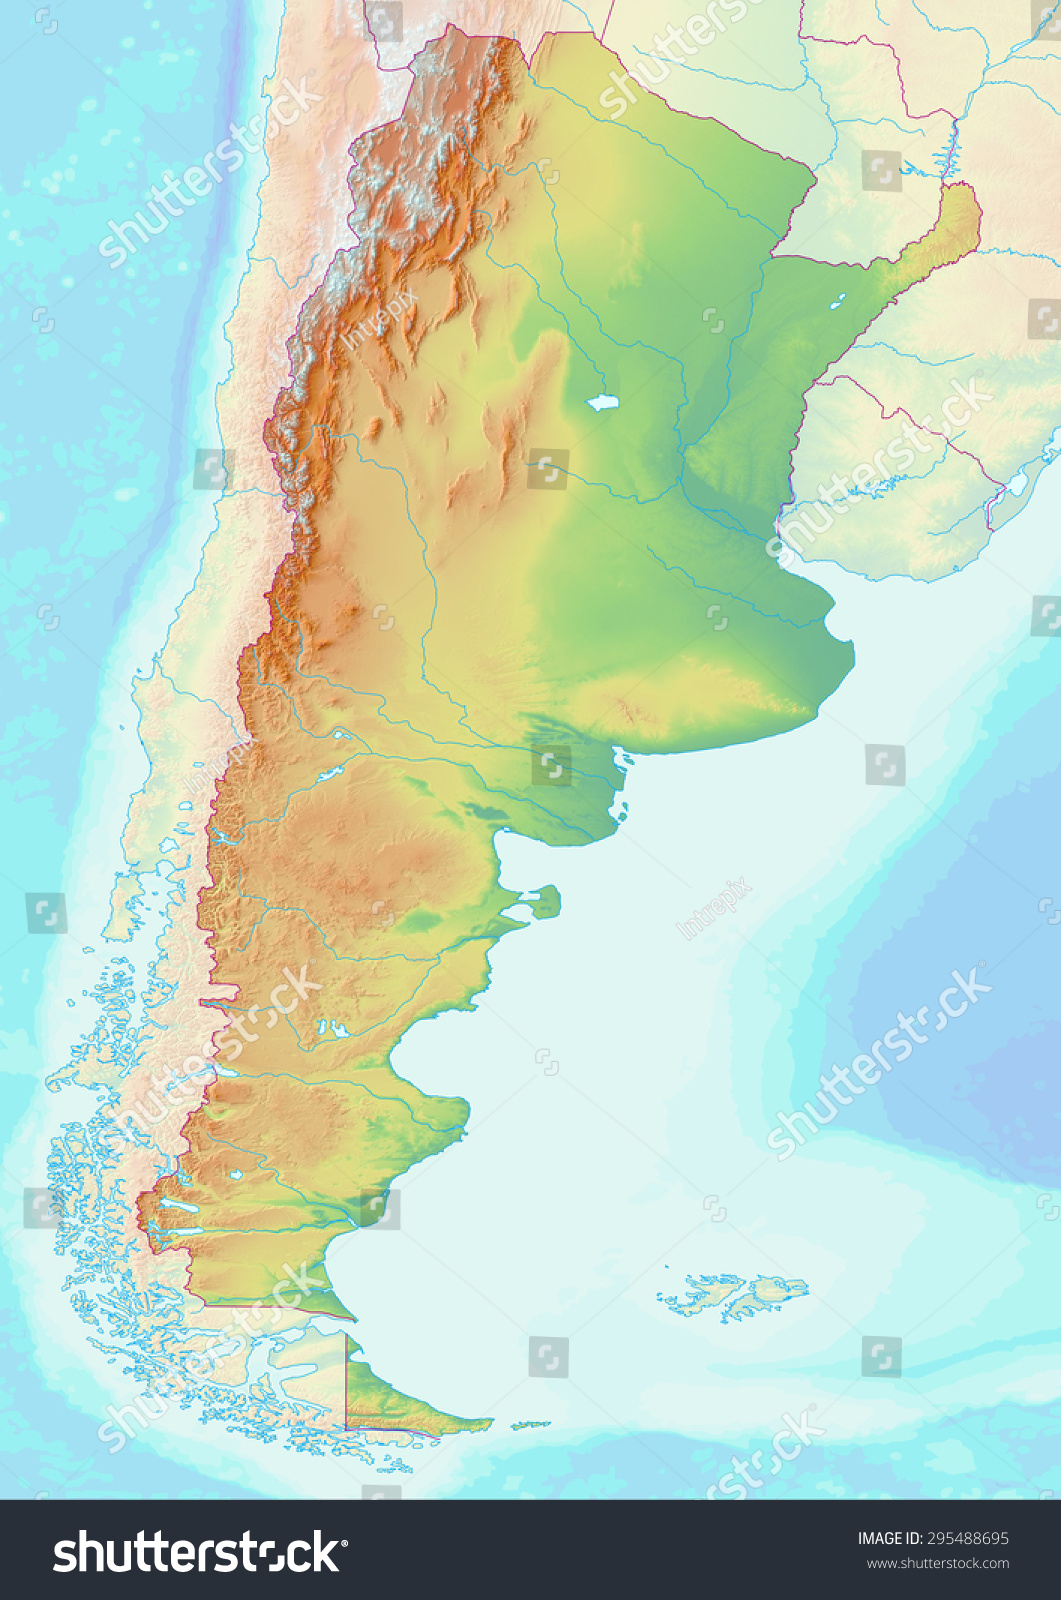 Map Of USA Topographic Map Worldofmapsnet Online Maps And States - Contiguous us hillshade map